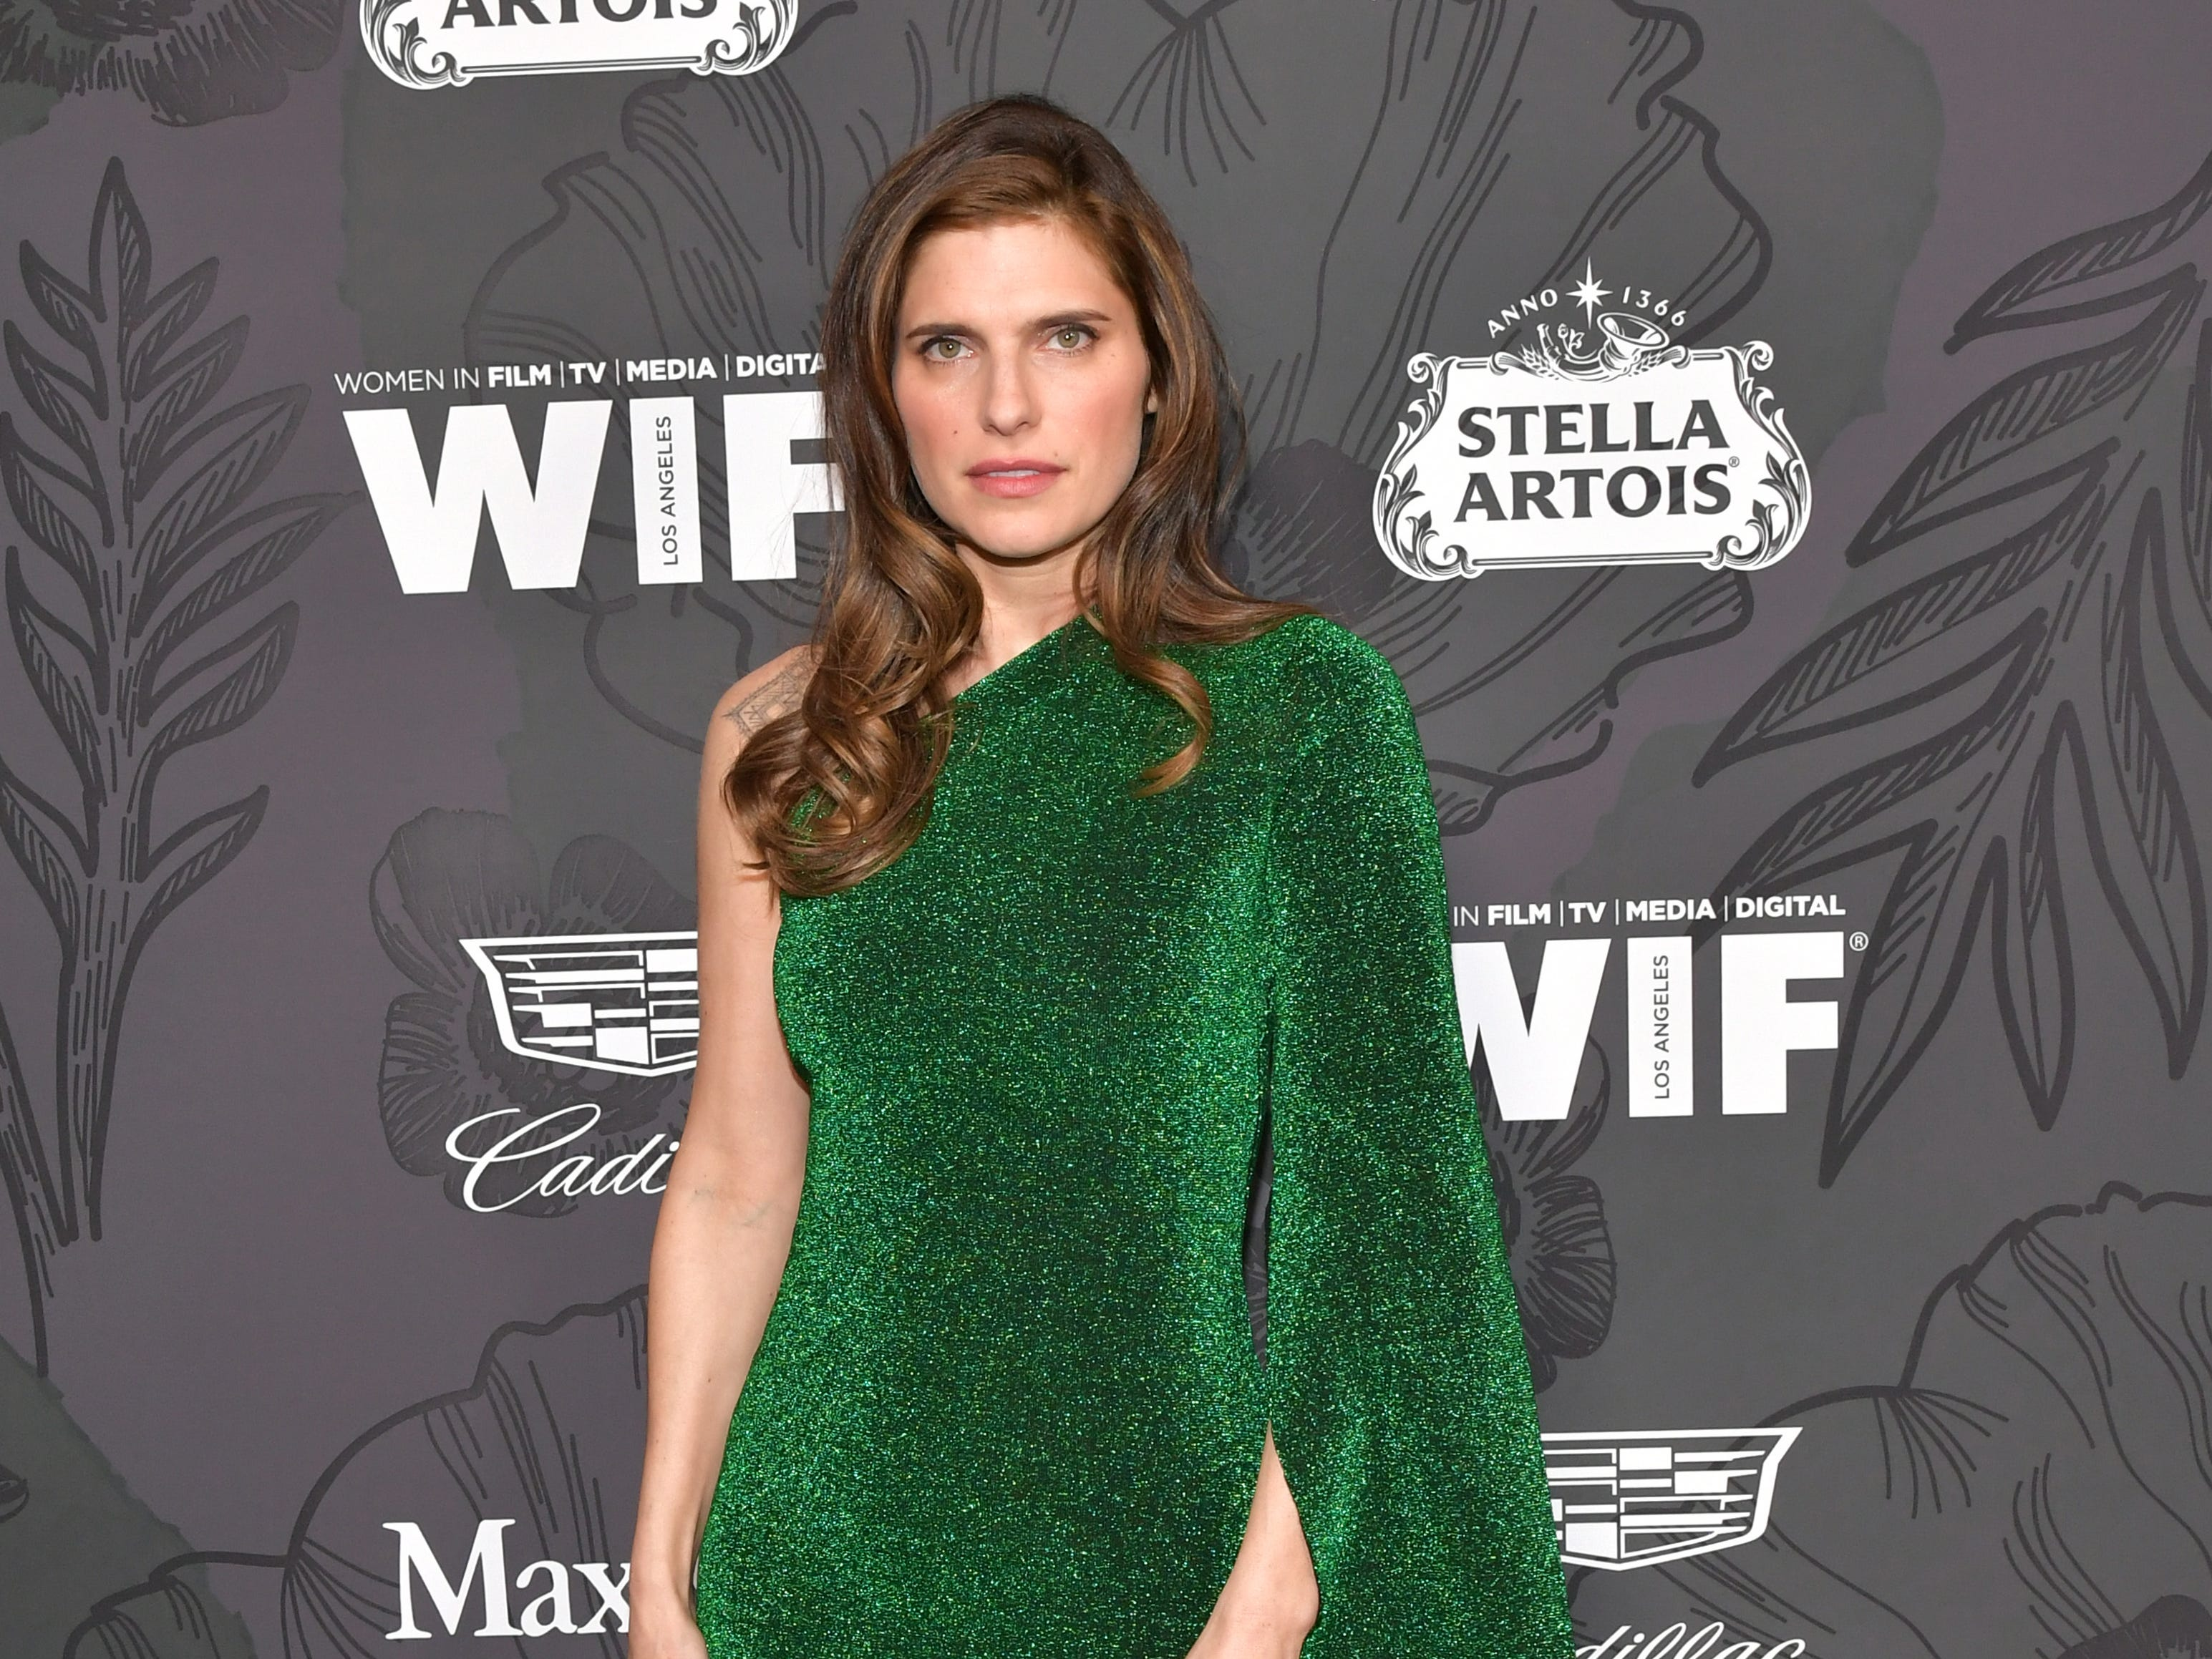 BEVERLY HILLS, CALIFORNIA - FEBRUARY 22: Lake Bell attends the 12th Annual Women In Film Oscar Party at Spring Place on February 22, 2019 in Beverly Hills, California. (Photo by Amy Sussman/Getty Images) ORG XMIT: 775298179 ORIG FILE ID: 1131509238